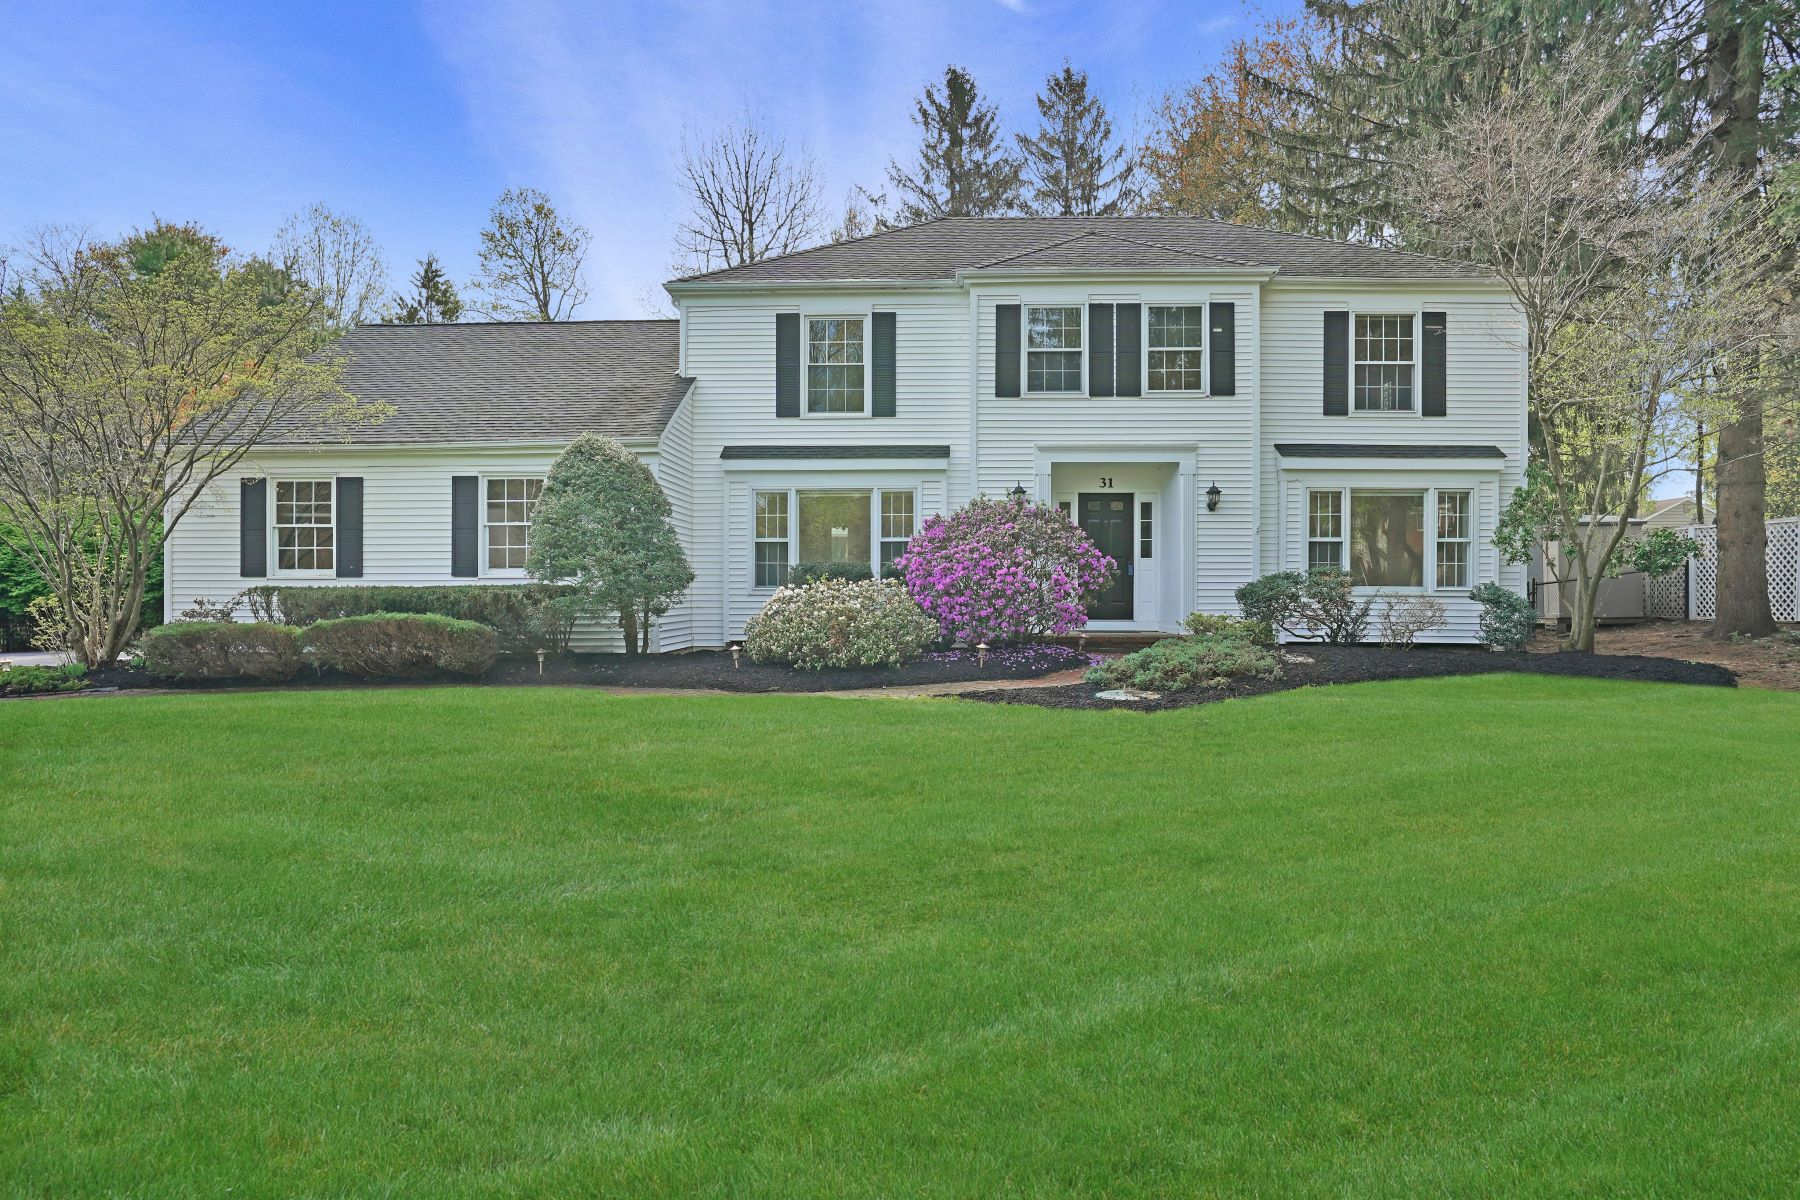 Single Family Homes for Sale at Renovated Colonial 31 Wilkinson Road Randolph, New Jersey 07869 United States